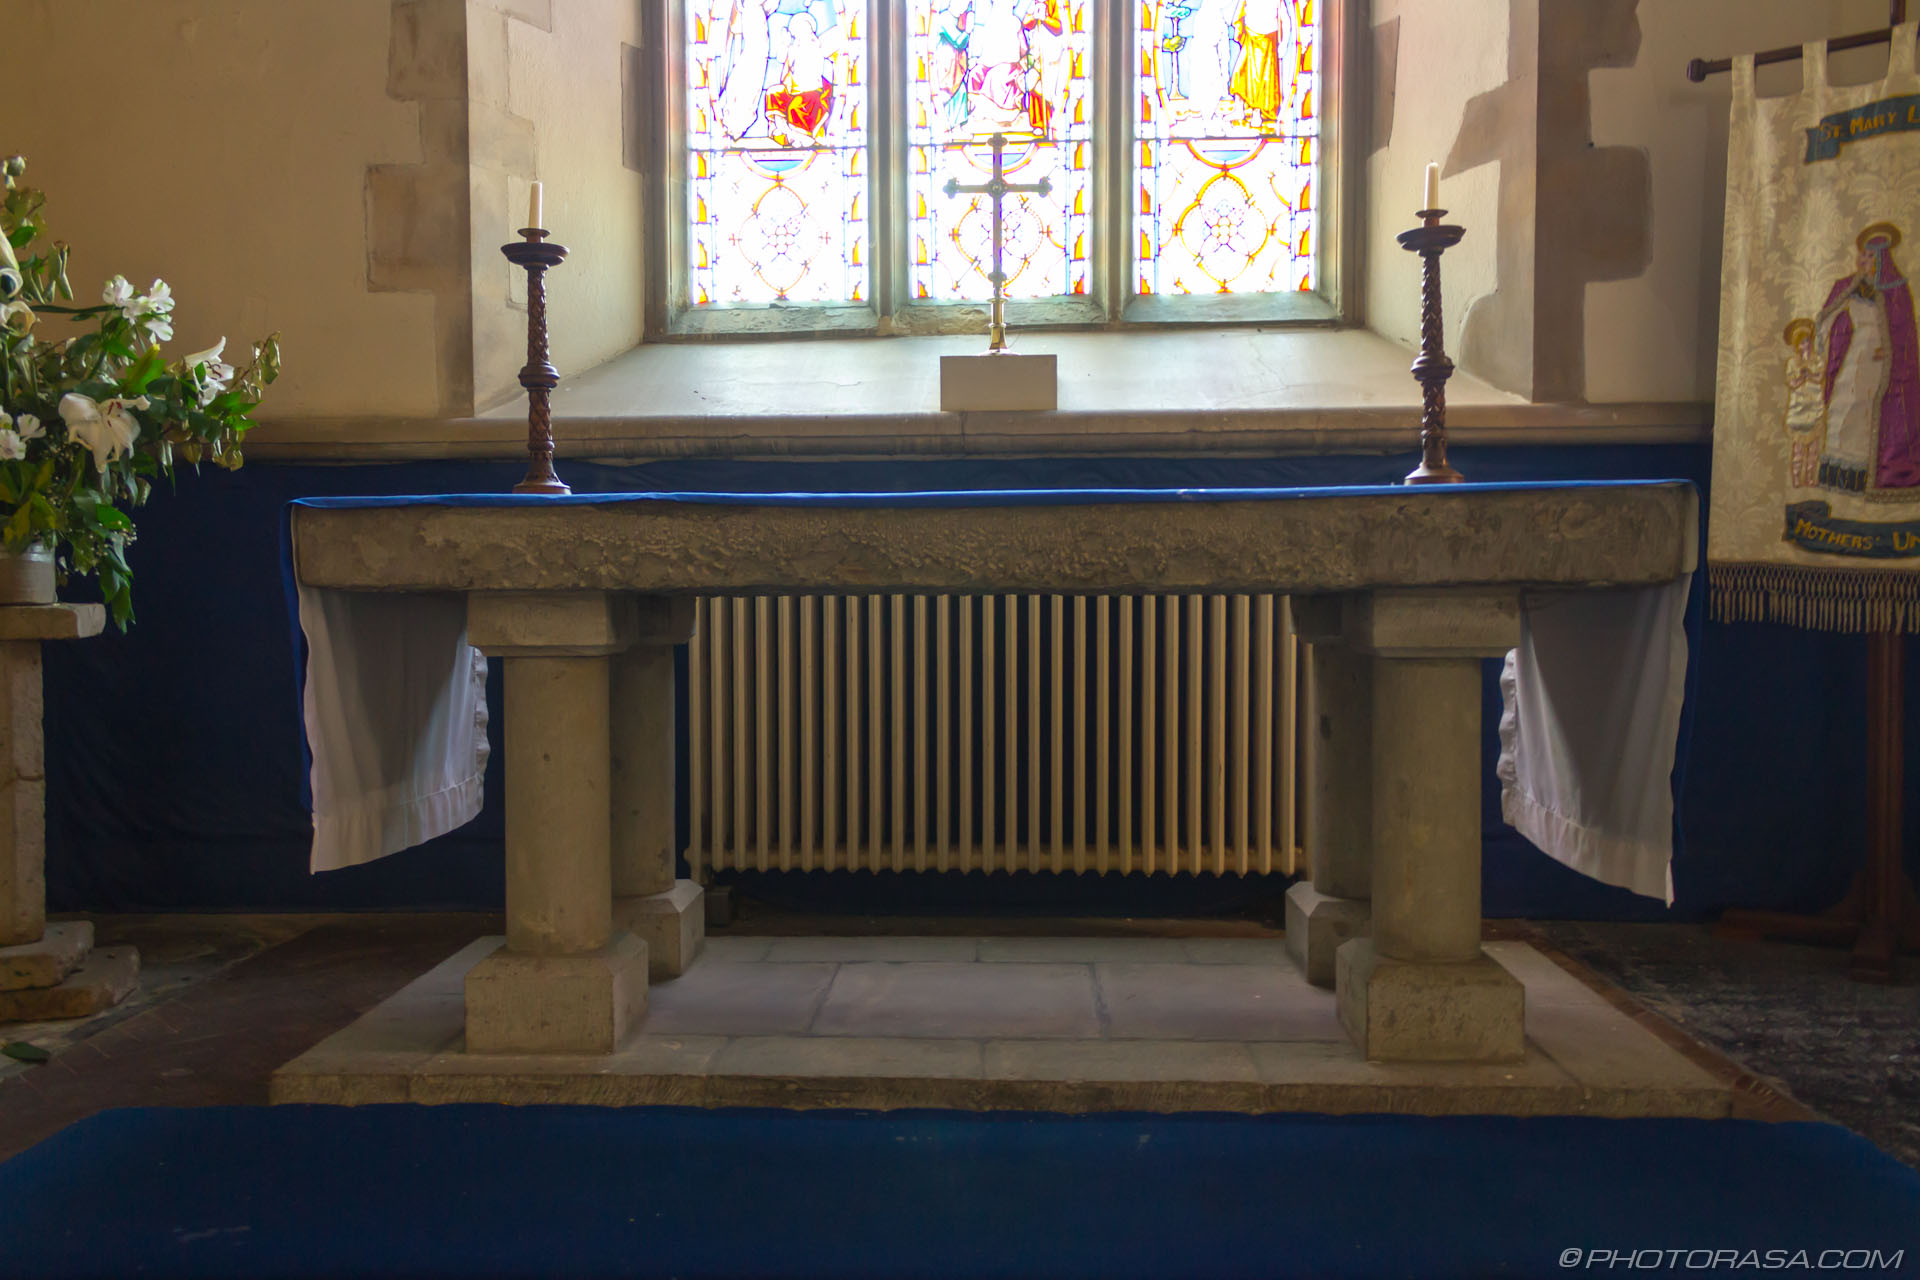 http://photorasa.com/st-marys-church-in-lenham/medieval-english-stone-altar/